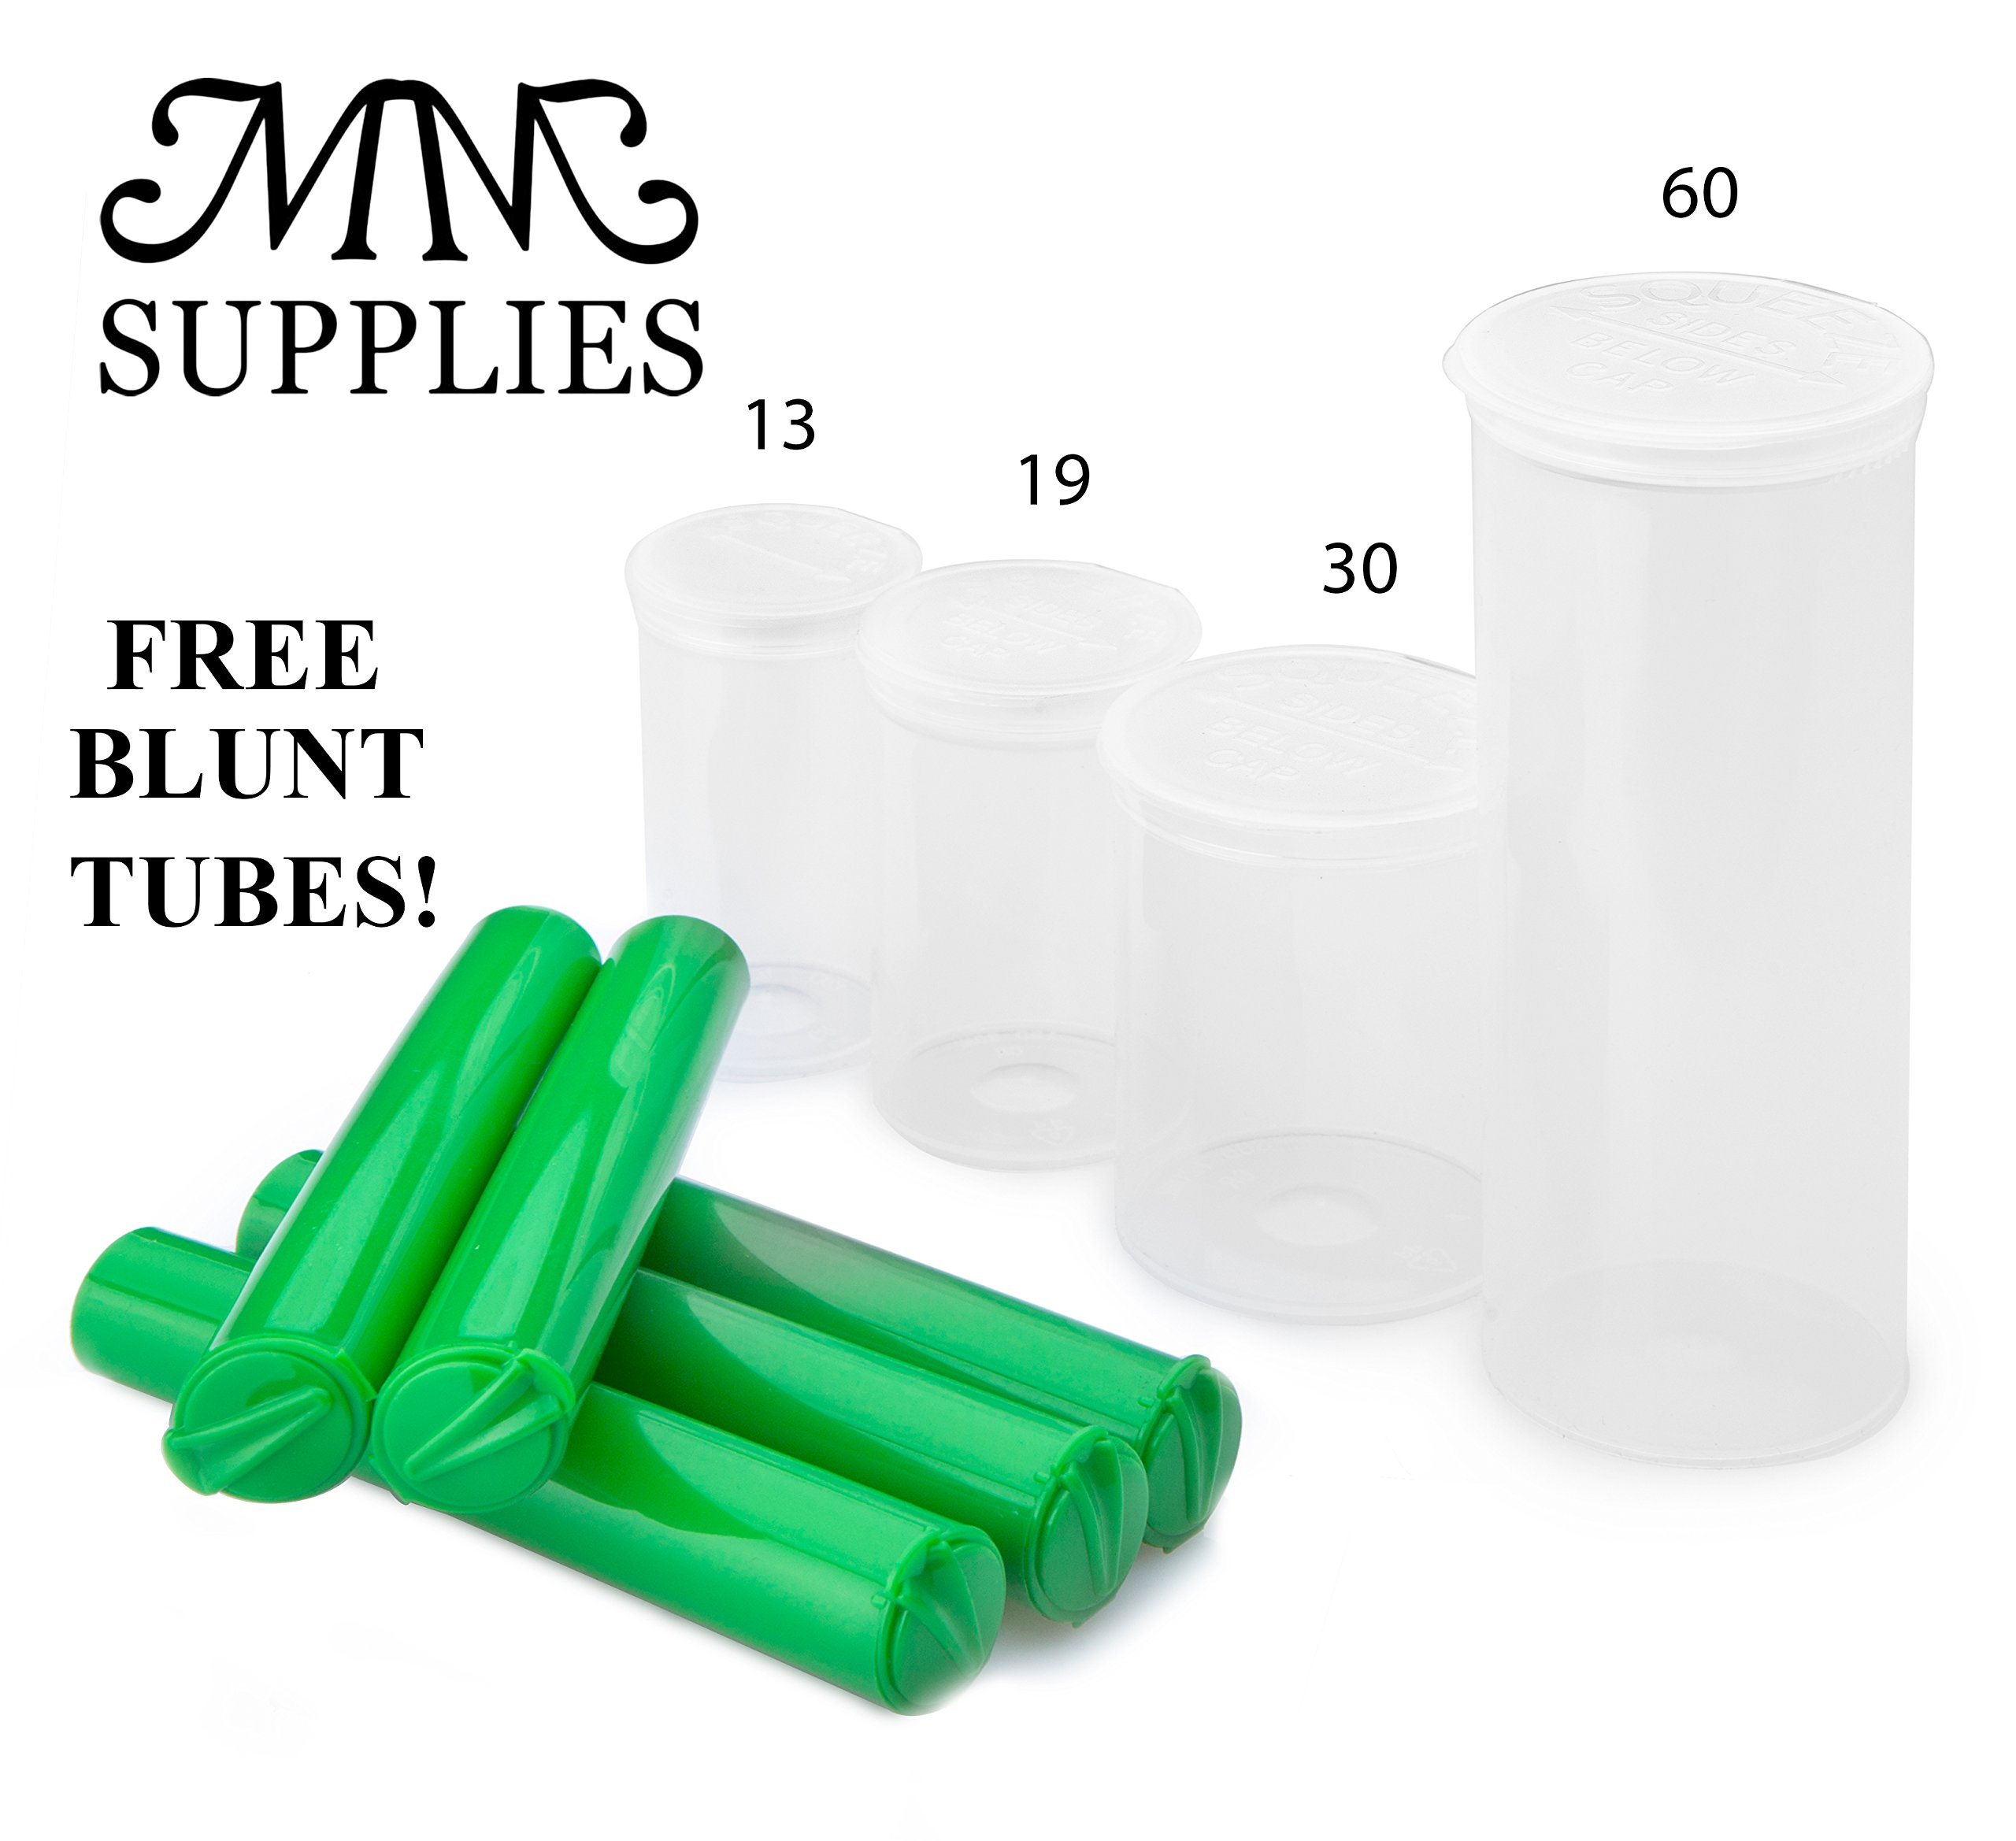 MM SUPPLIES Pop Top Vials 19 Dram Case of 225| FREE BLUNT TUBES Full (75,150,225,315) Medical Marijuana Container 3.5 Grams Pop Top Bottles Pop Top Vial. (225, 19 DRAM CLEAR) by MM SUPPLIES